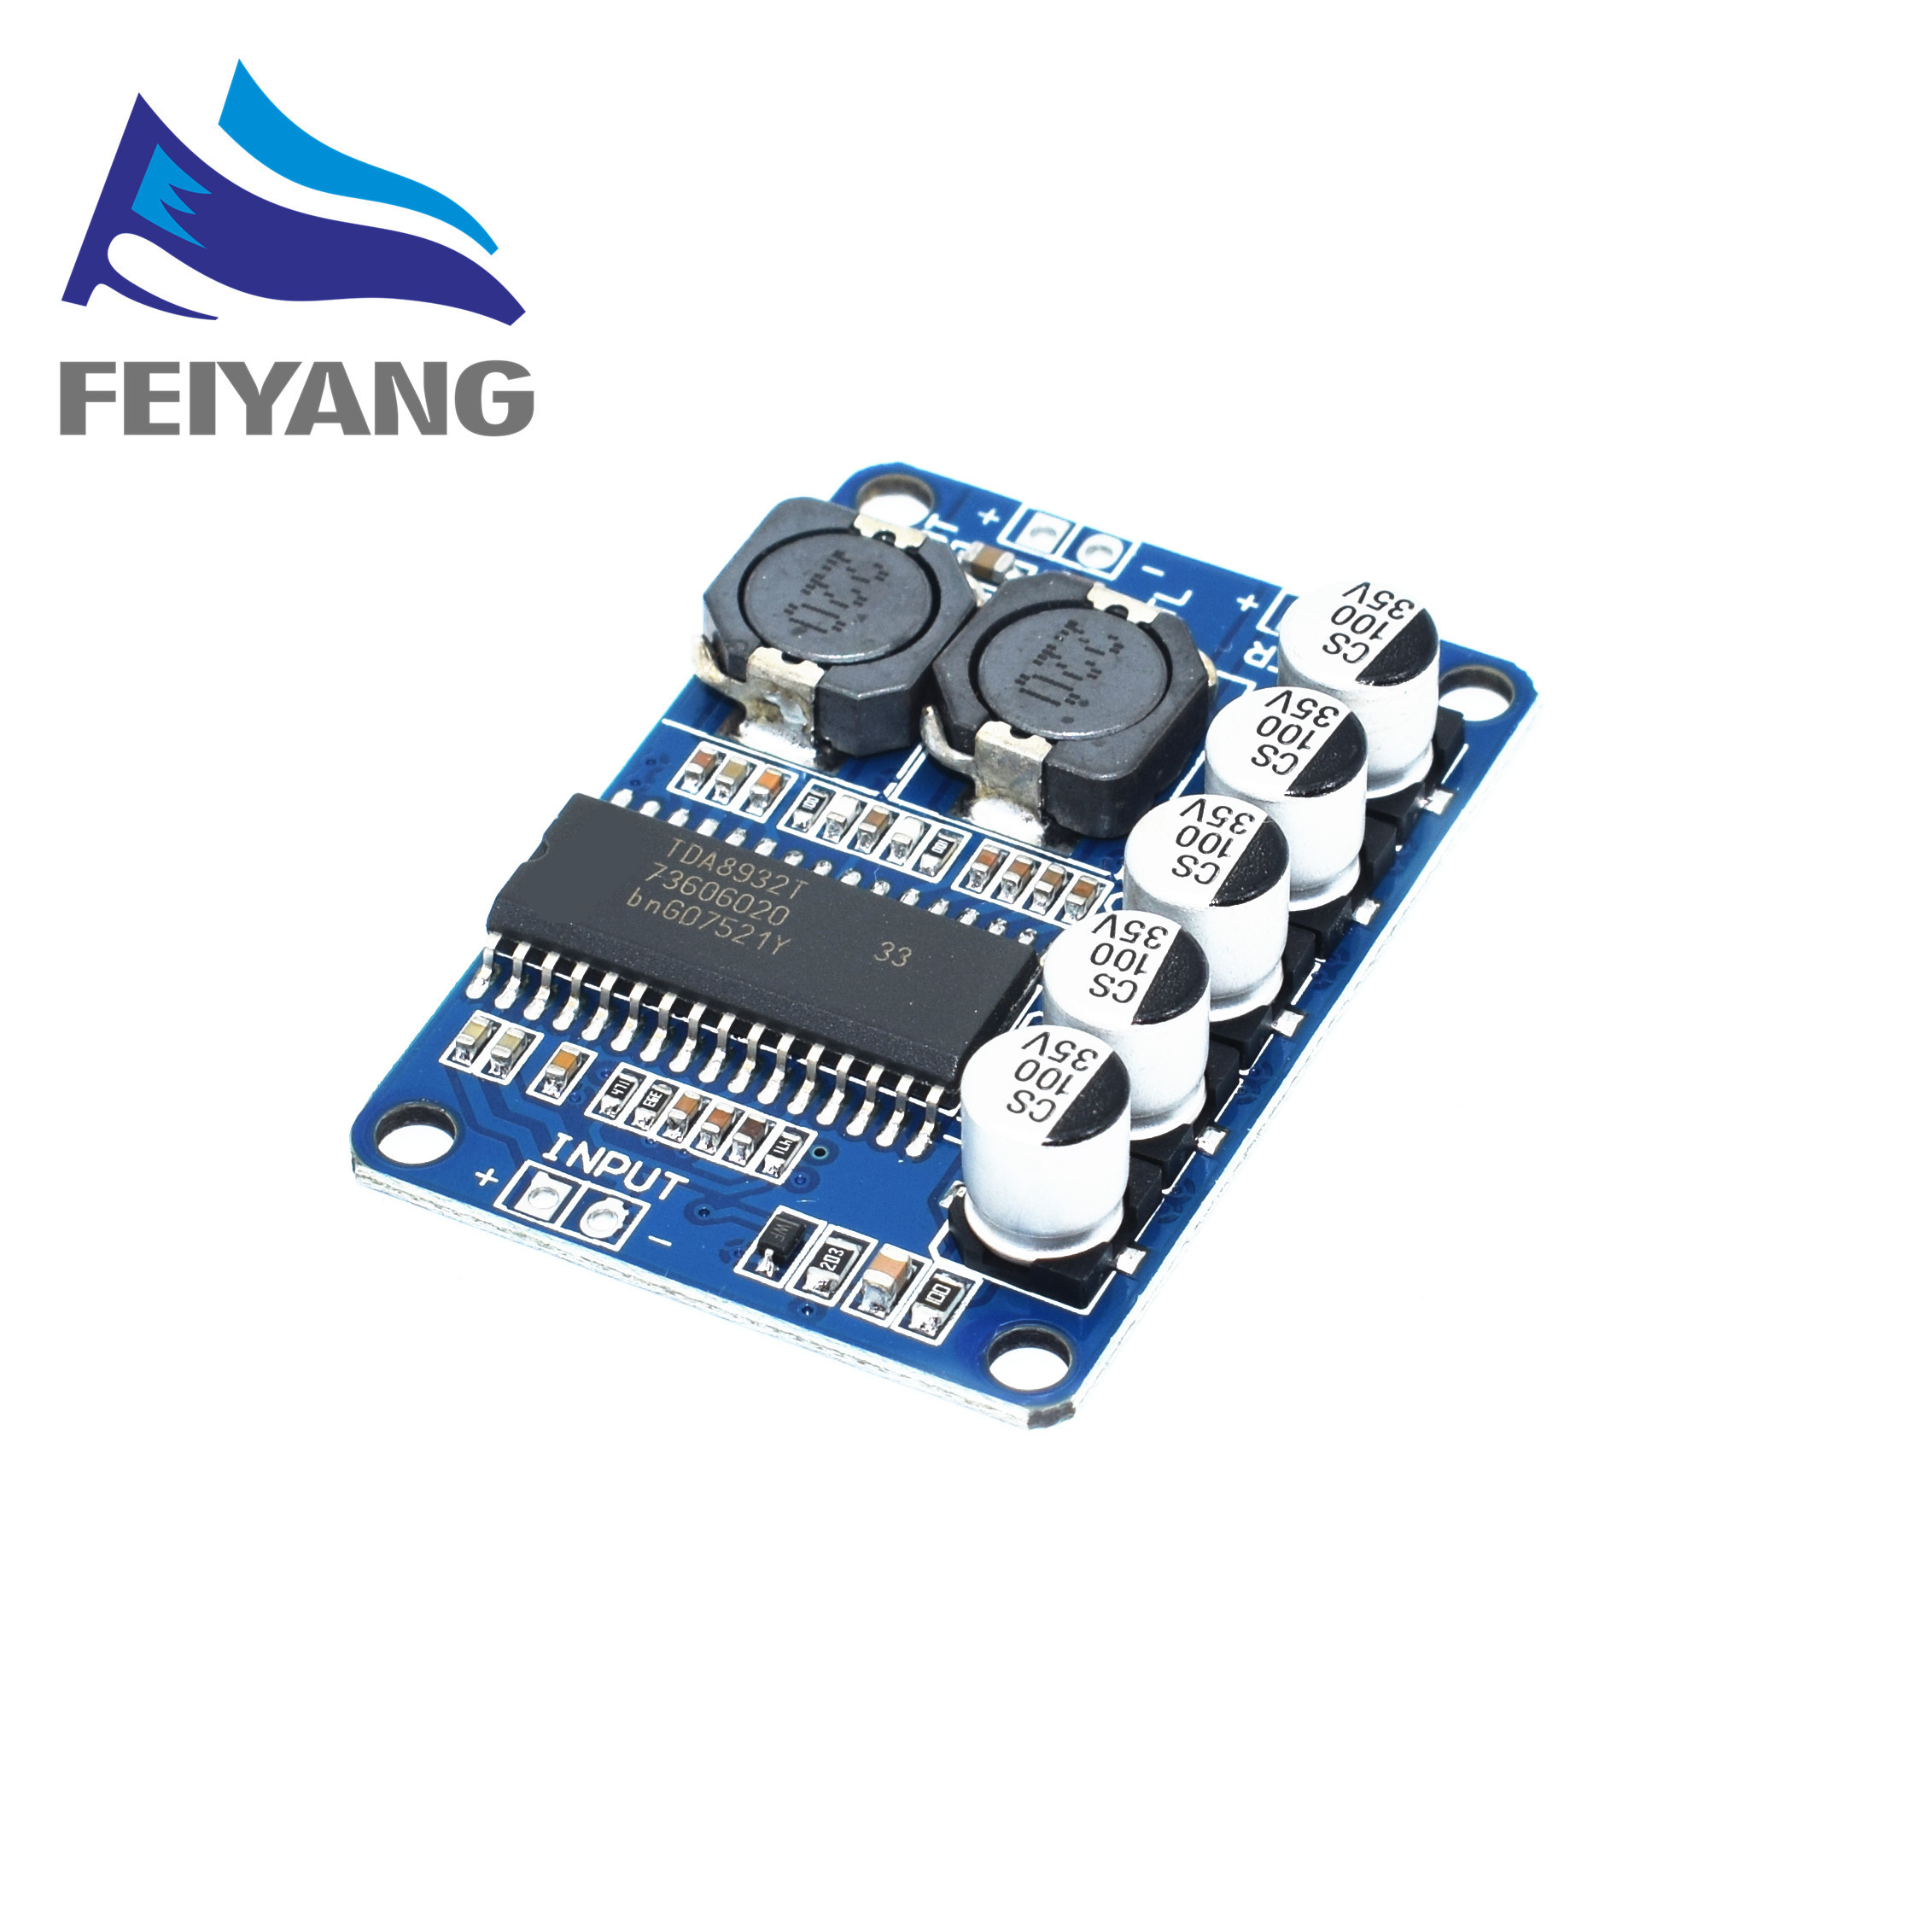 1pcs samiore robot low power tda8932 35w digital amplifier board 1pcs samiore robot low power tda8932 35w digital amplifier board module mono power altavistaventures Image collections